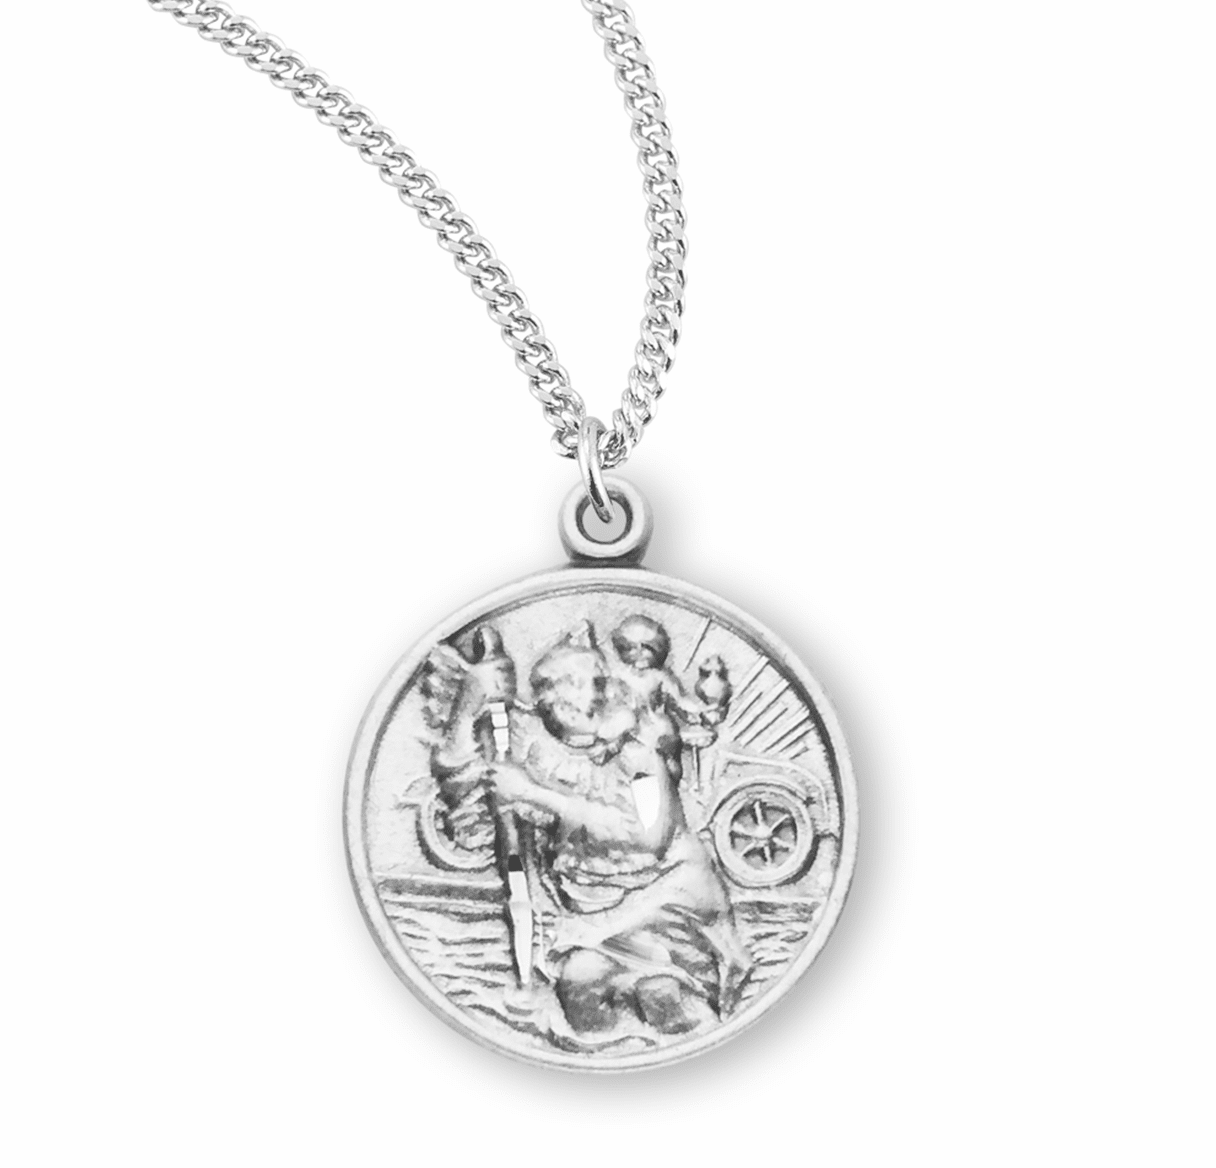 HMH Religious Small Round Sterling Silver St Christopher Medal Necklace